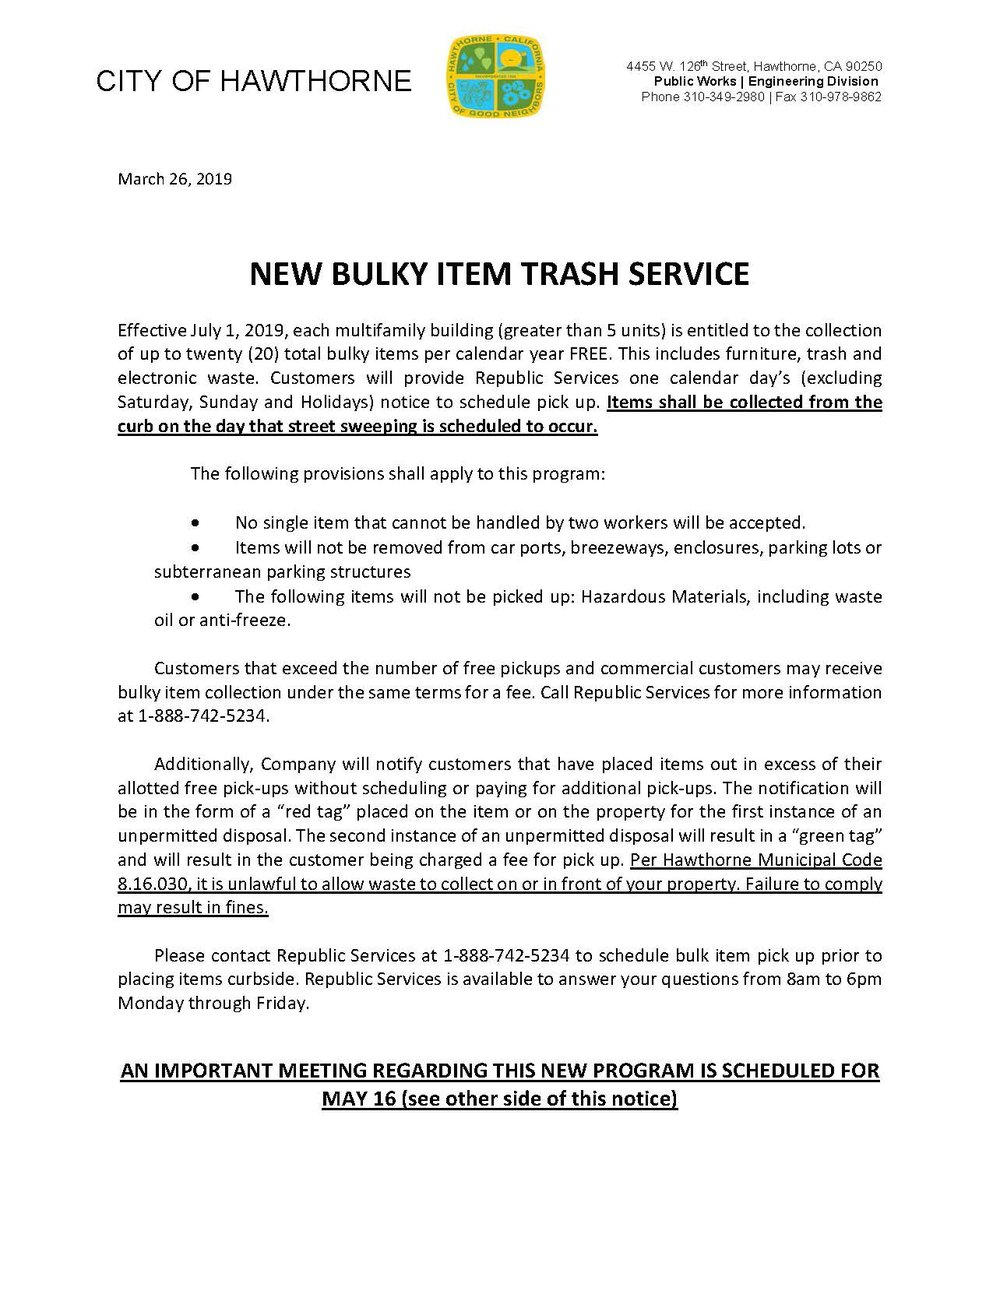 New Bulky Item Trash Service